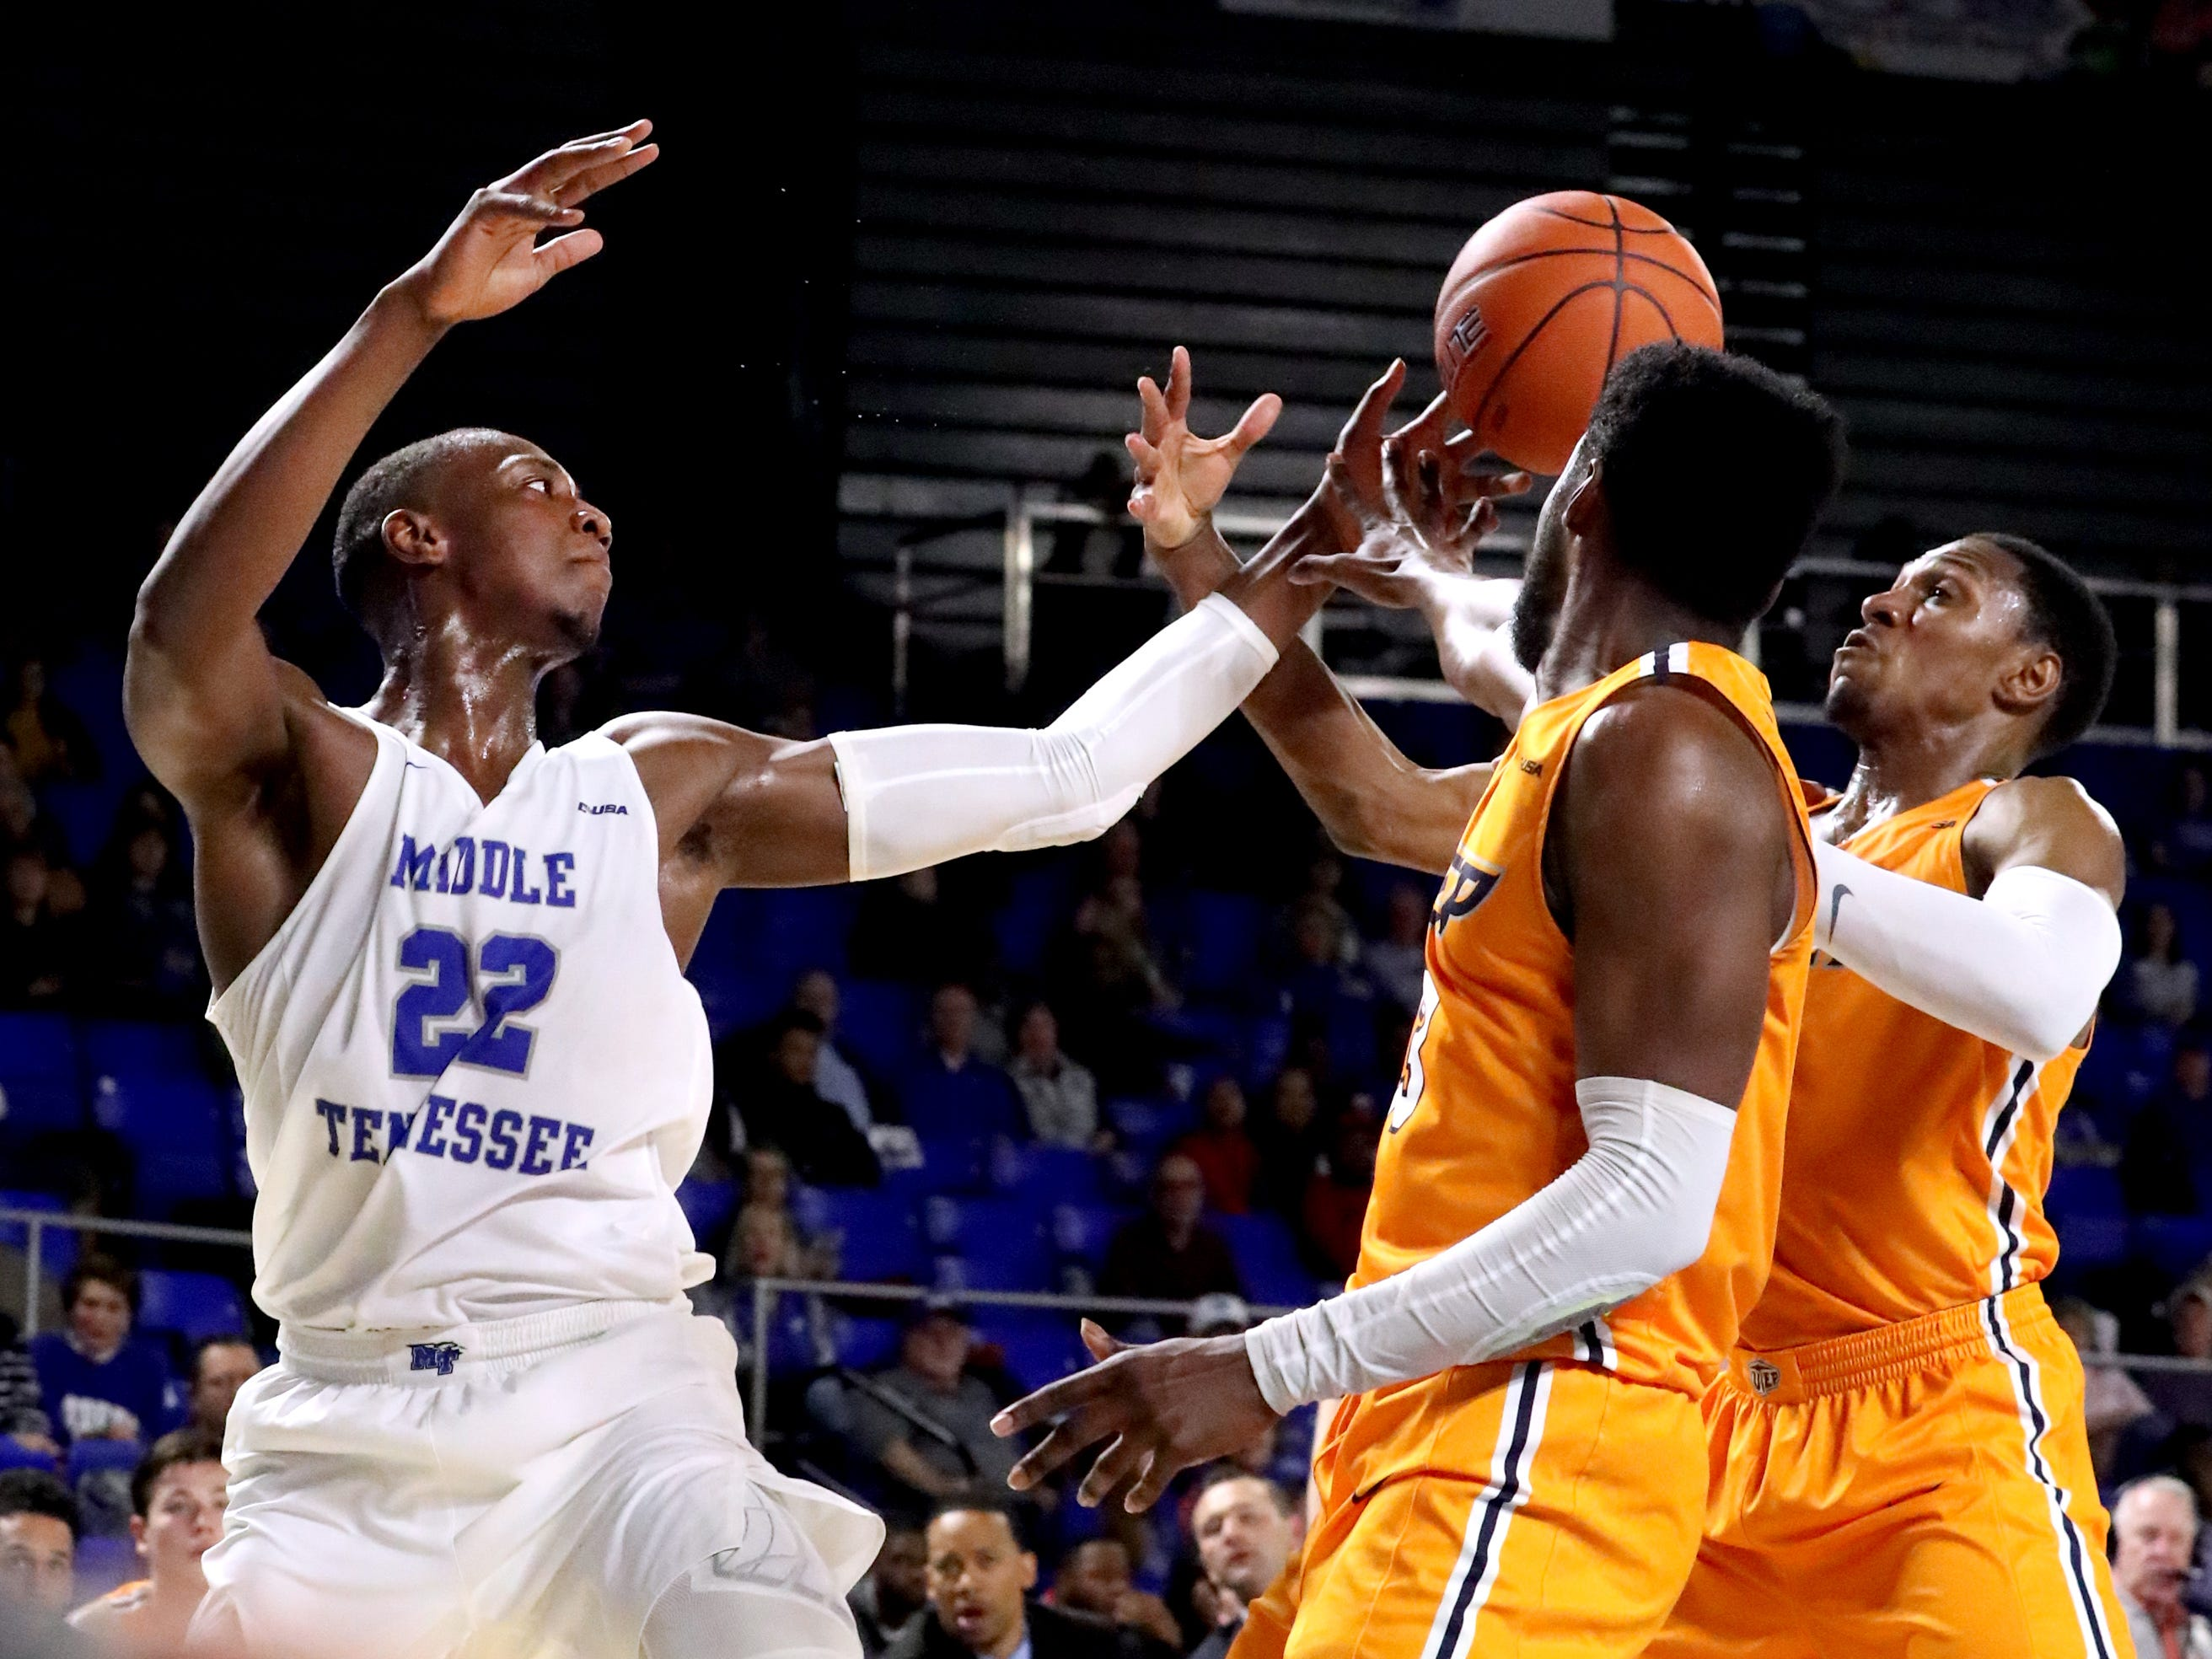 MTSU forward Reggie Scurry (22) UTEP guard Ountae Campbell (13) and UTEP guard Evan Gilyard (3) all go for a loos ball on Saturday, March 9, 2019, at Murphy Center in Murfreesboro, Tenn.